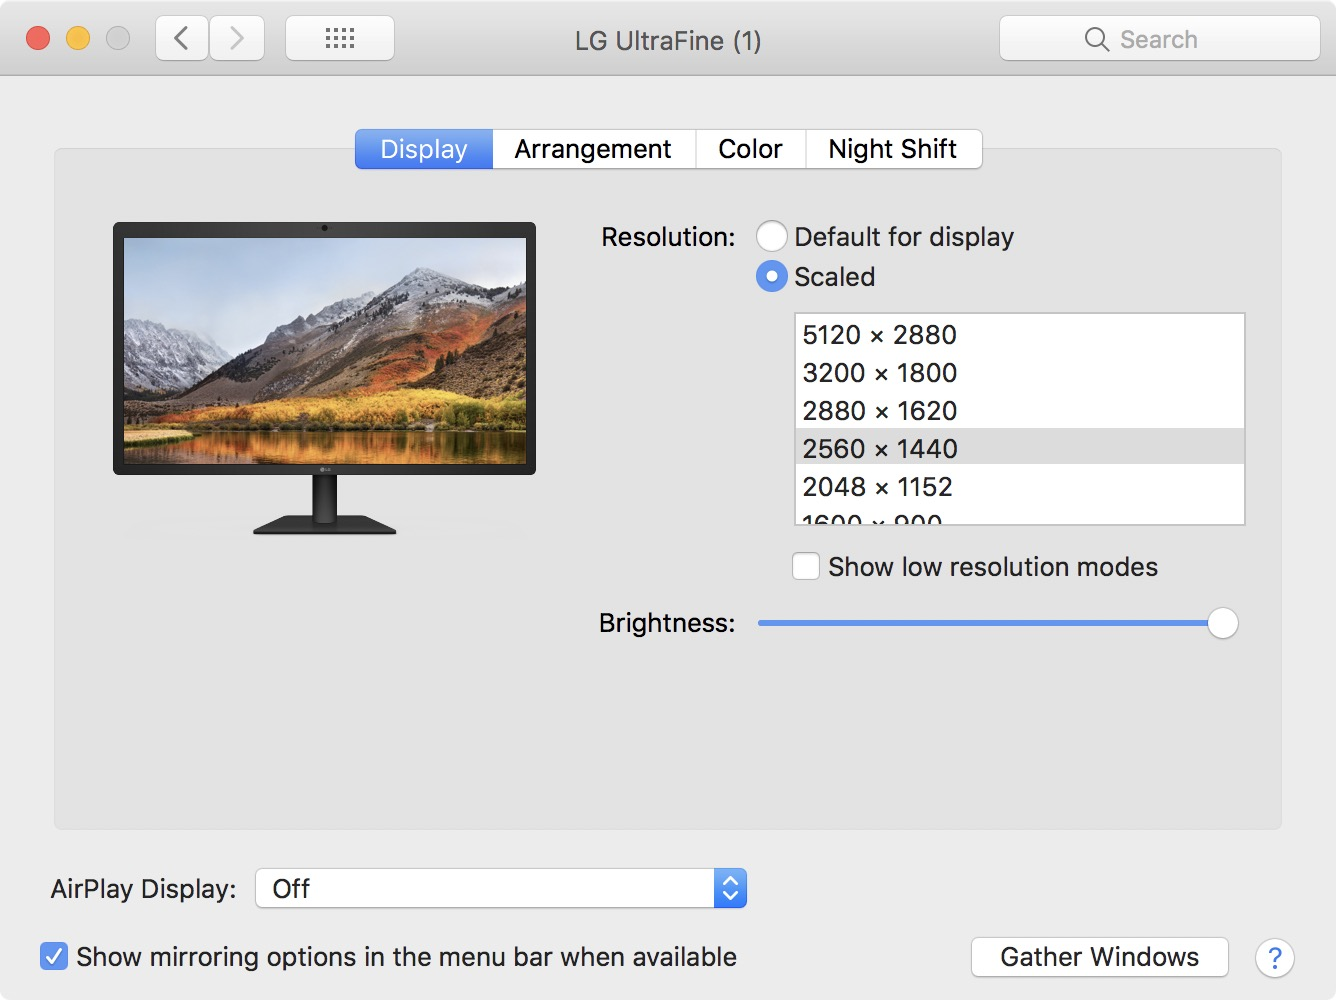 LG Screen Manager App for UltraFine Displays Updated for macOS High